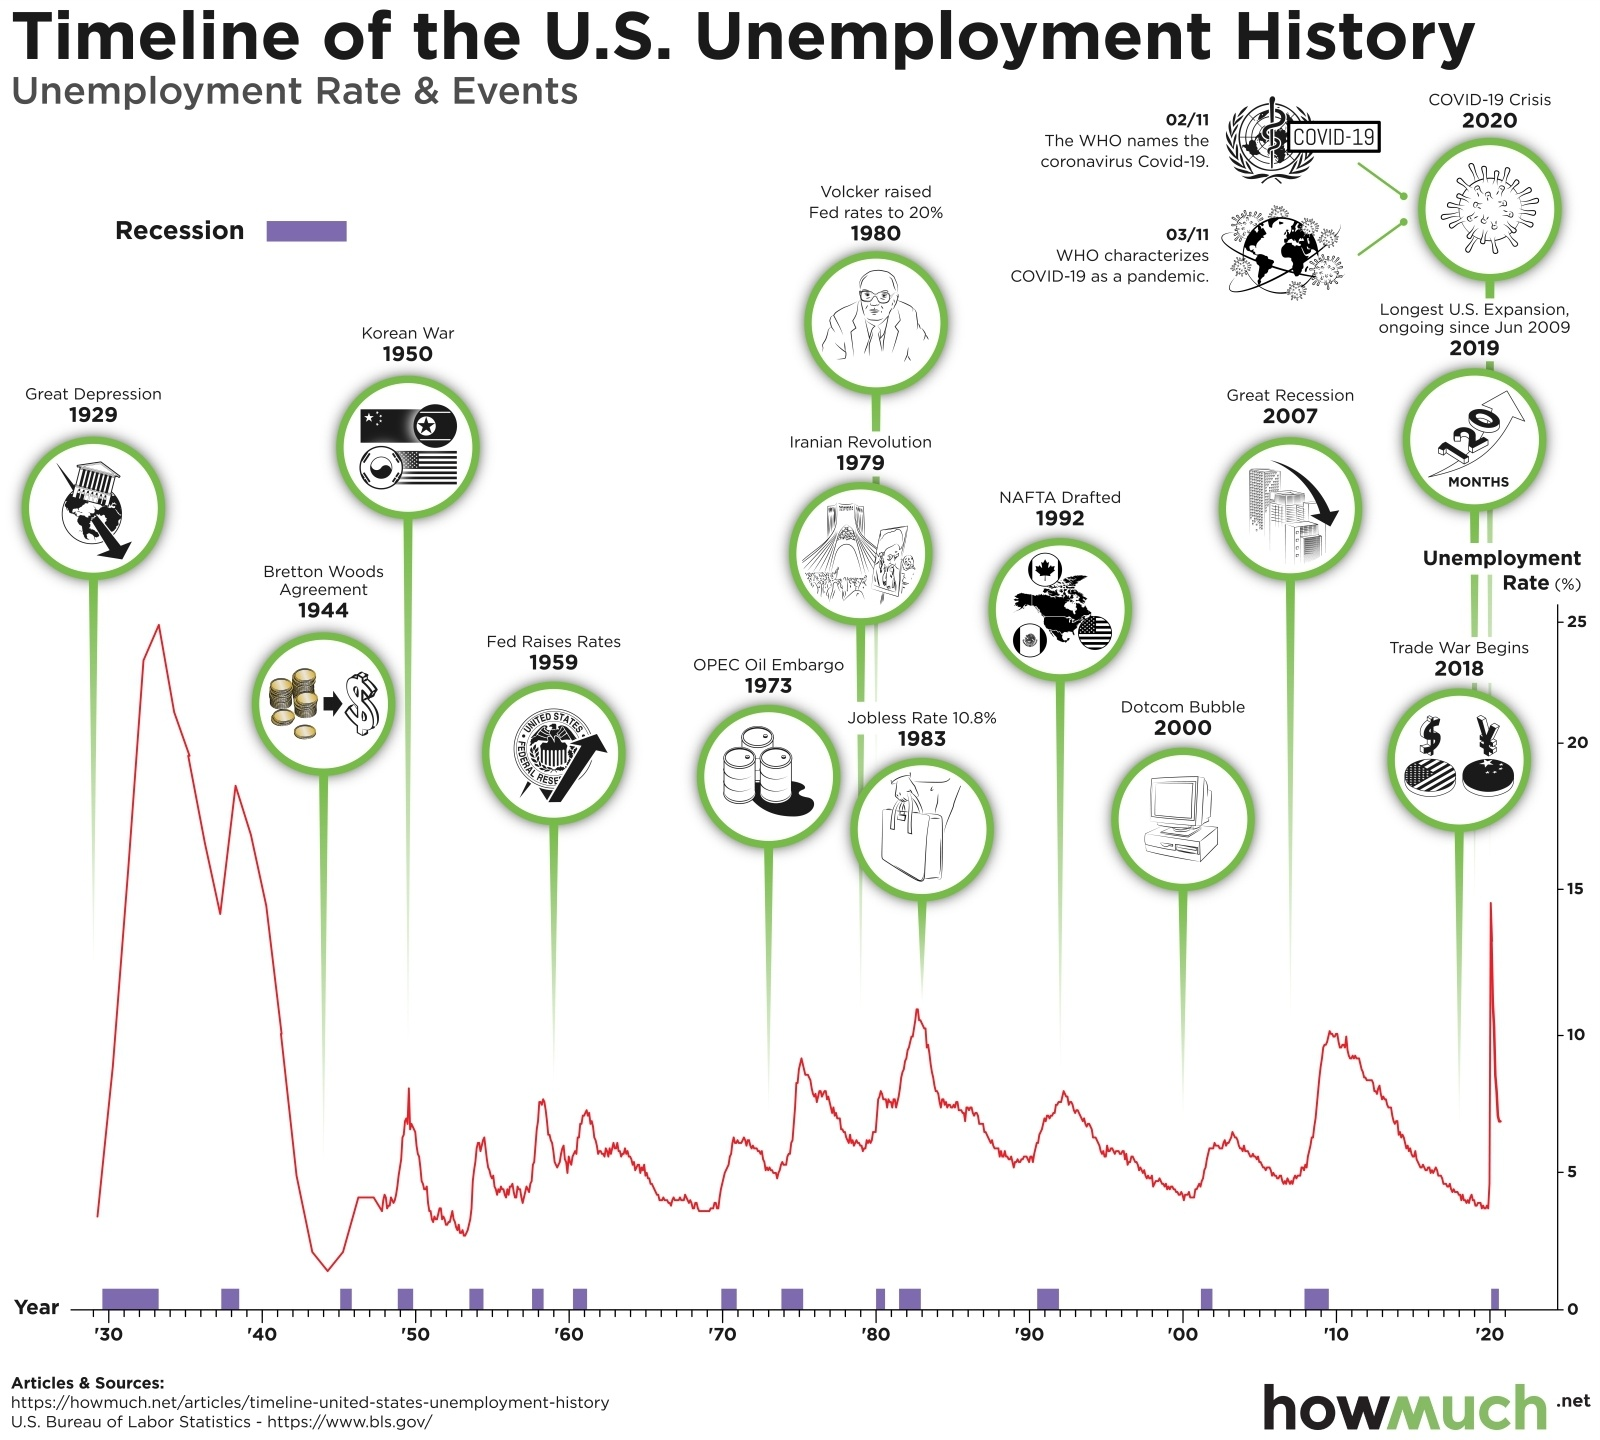 Unemployment rate change over time